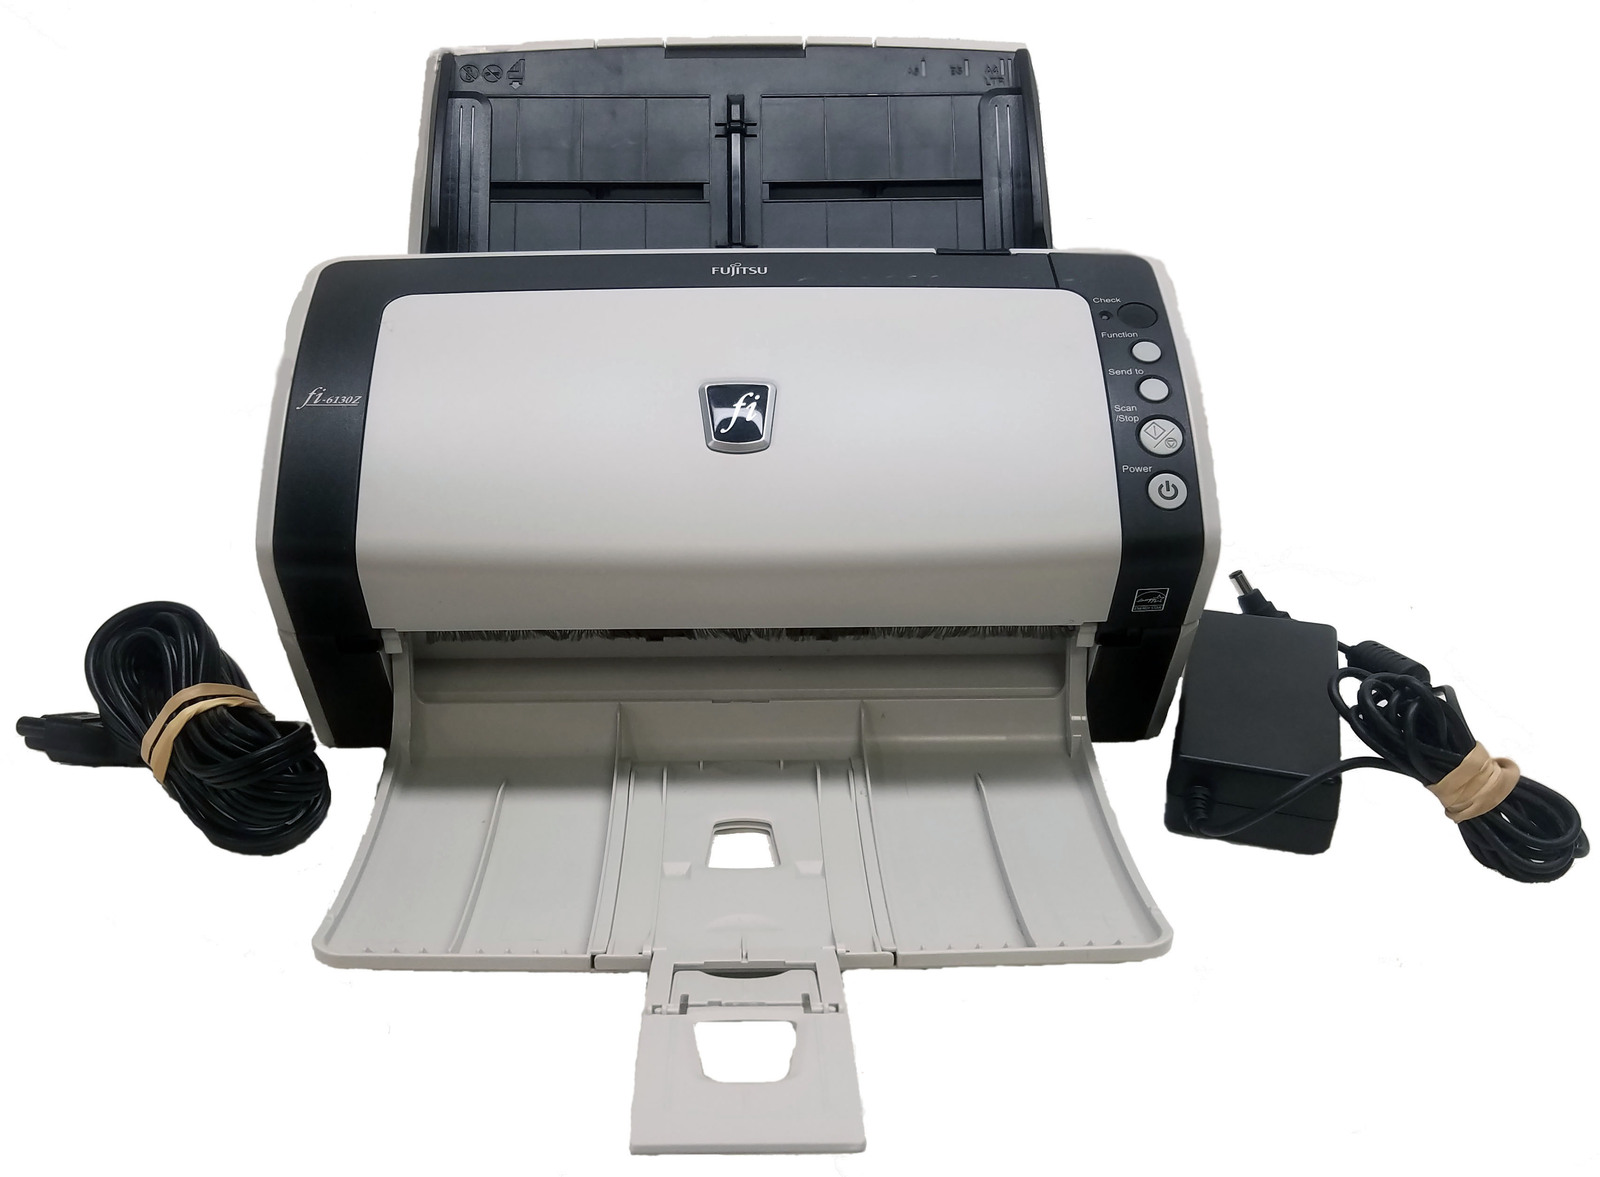 Fujitsu fi-6130Z Color Duplex Scanner With A/C Adapter Bin:1